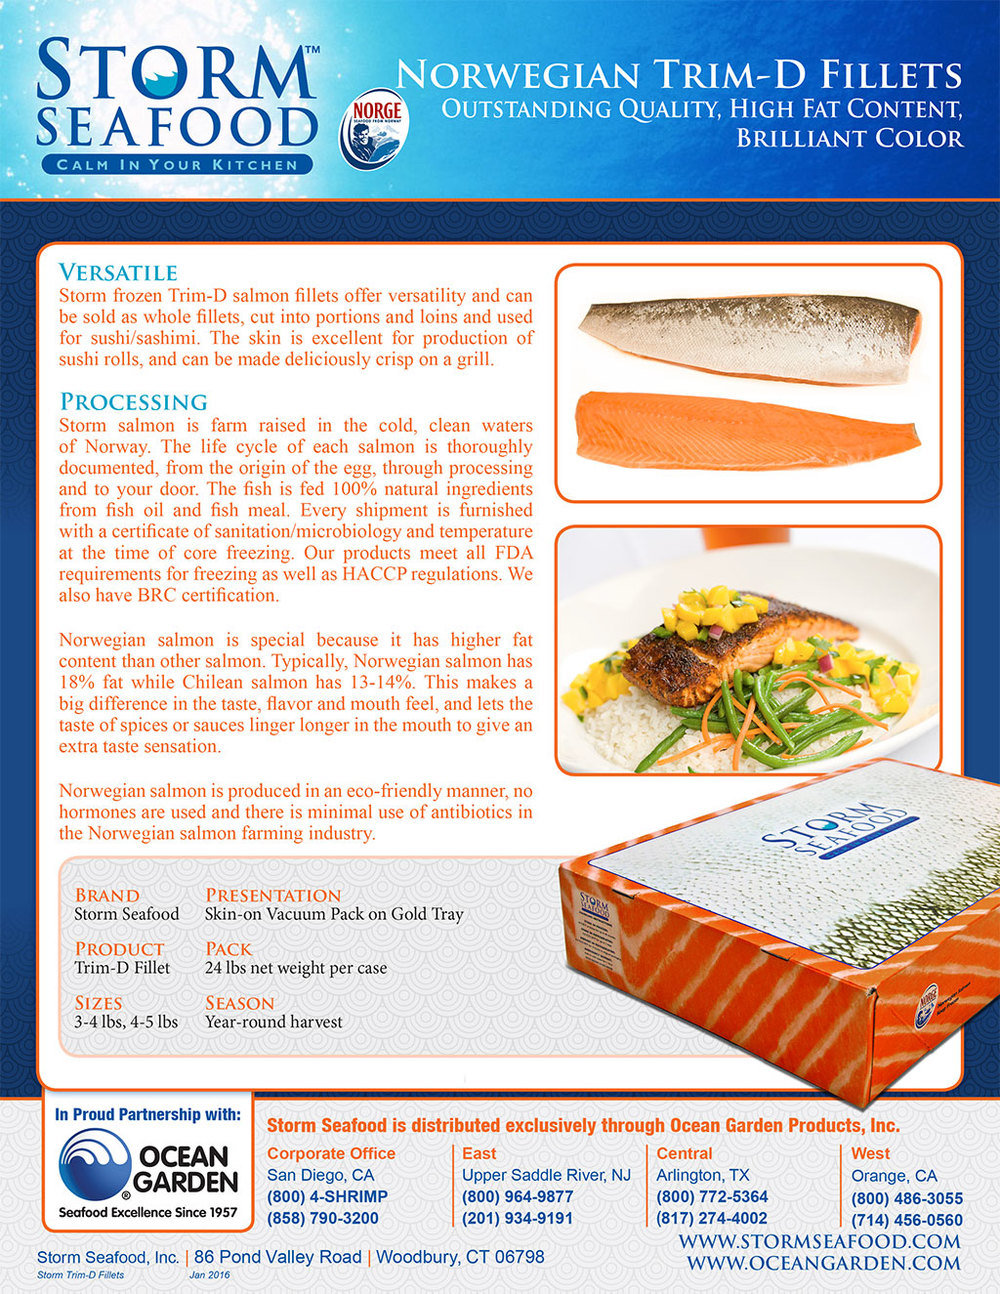 NORWEGIAN TRIM-D FILLETS